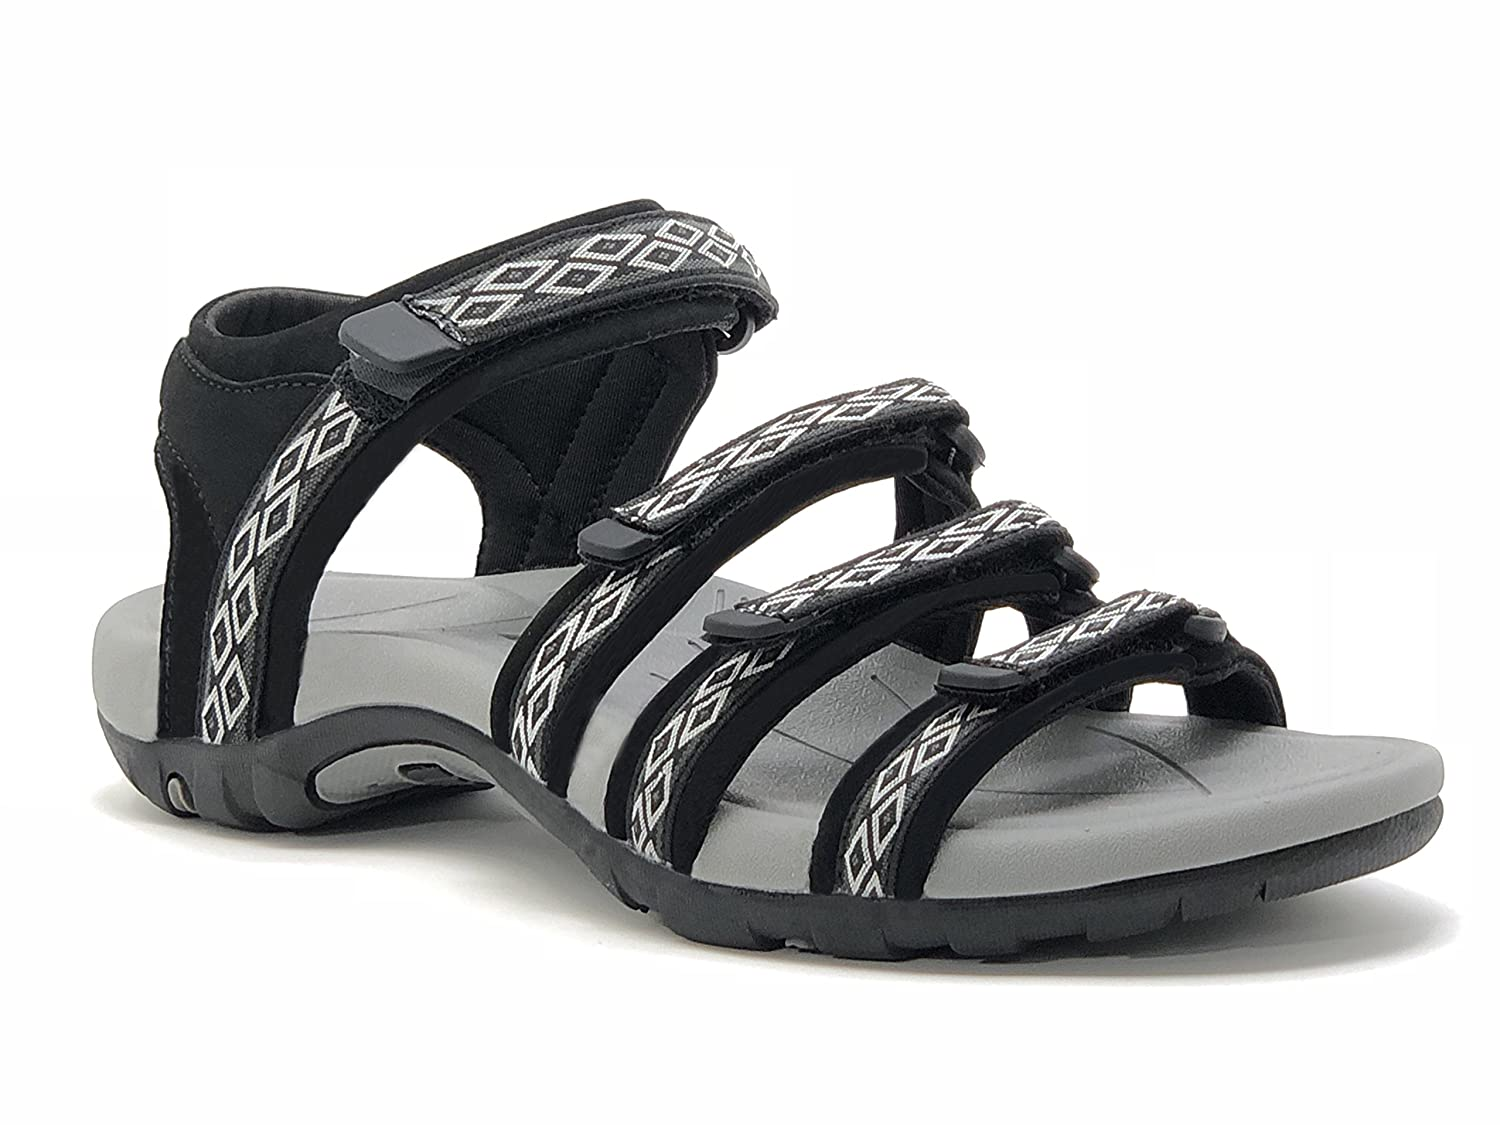 Viakix Hiking Sandals Women Athletic Sport Sandal for Outdoors Walking  Water Clothing, Shoes & Jewelry Men